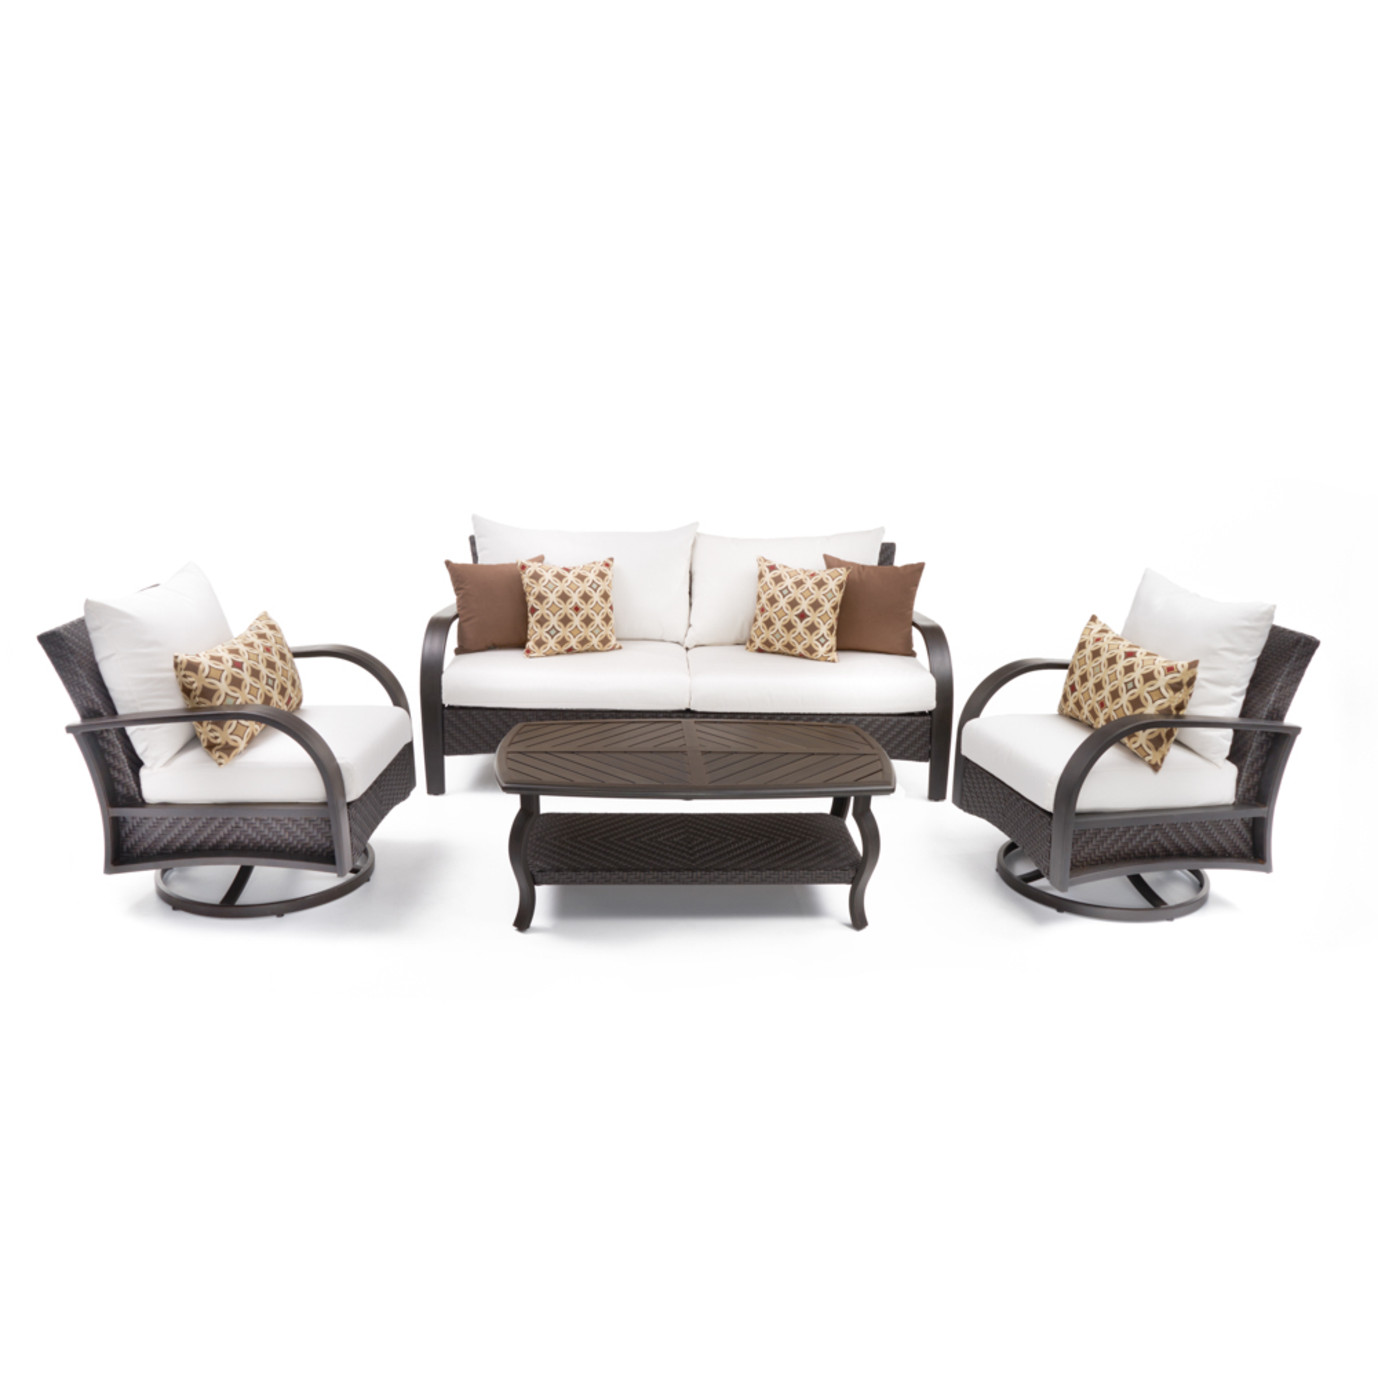 Barcelo™ 4pc Motion Club & Sofa Set - Moroccan Cream